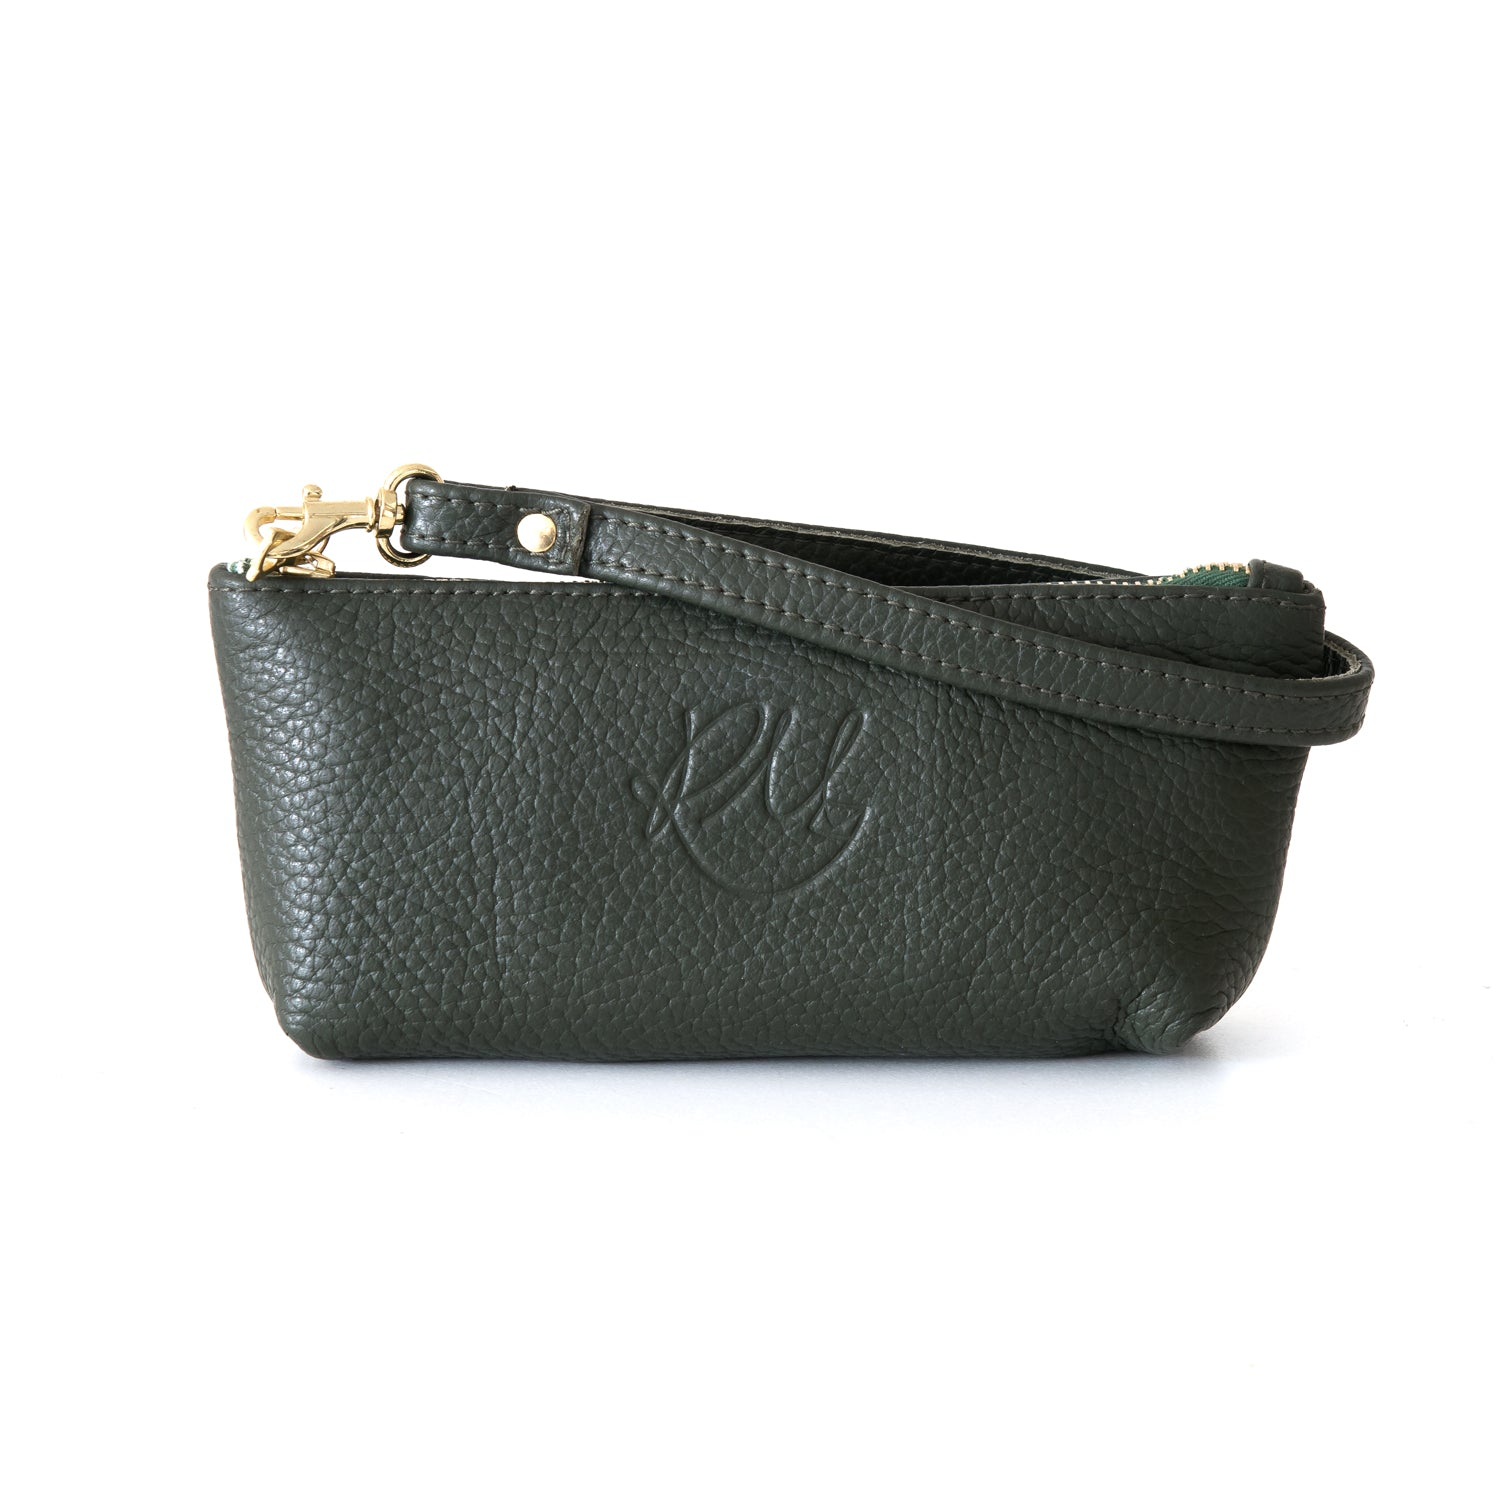 Poppy small leather clutch bag - Dark Green